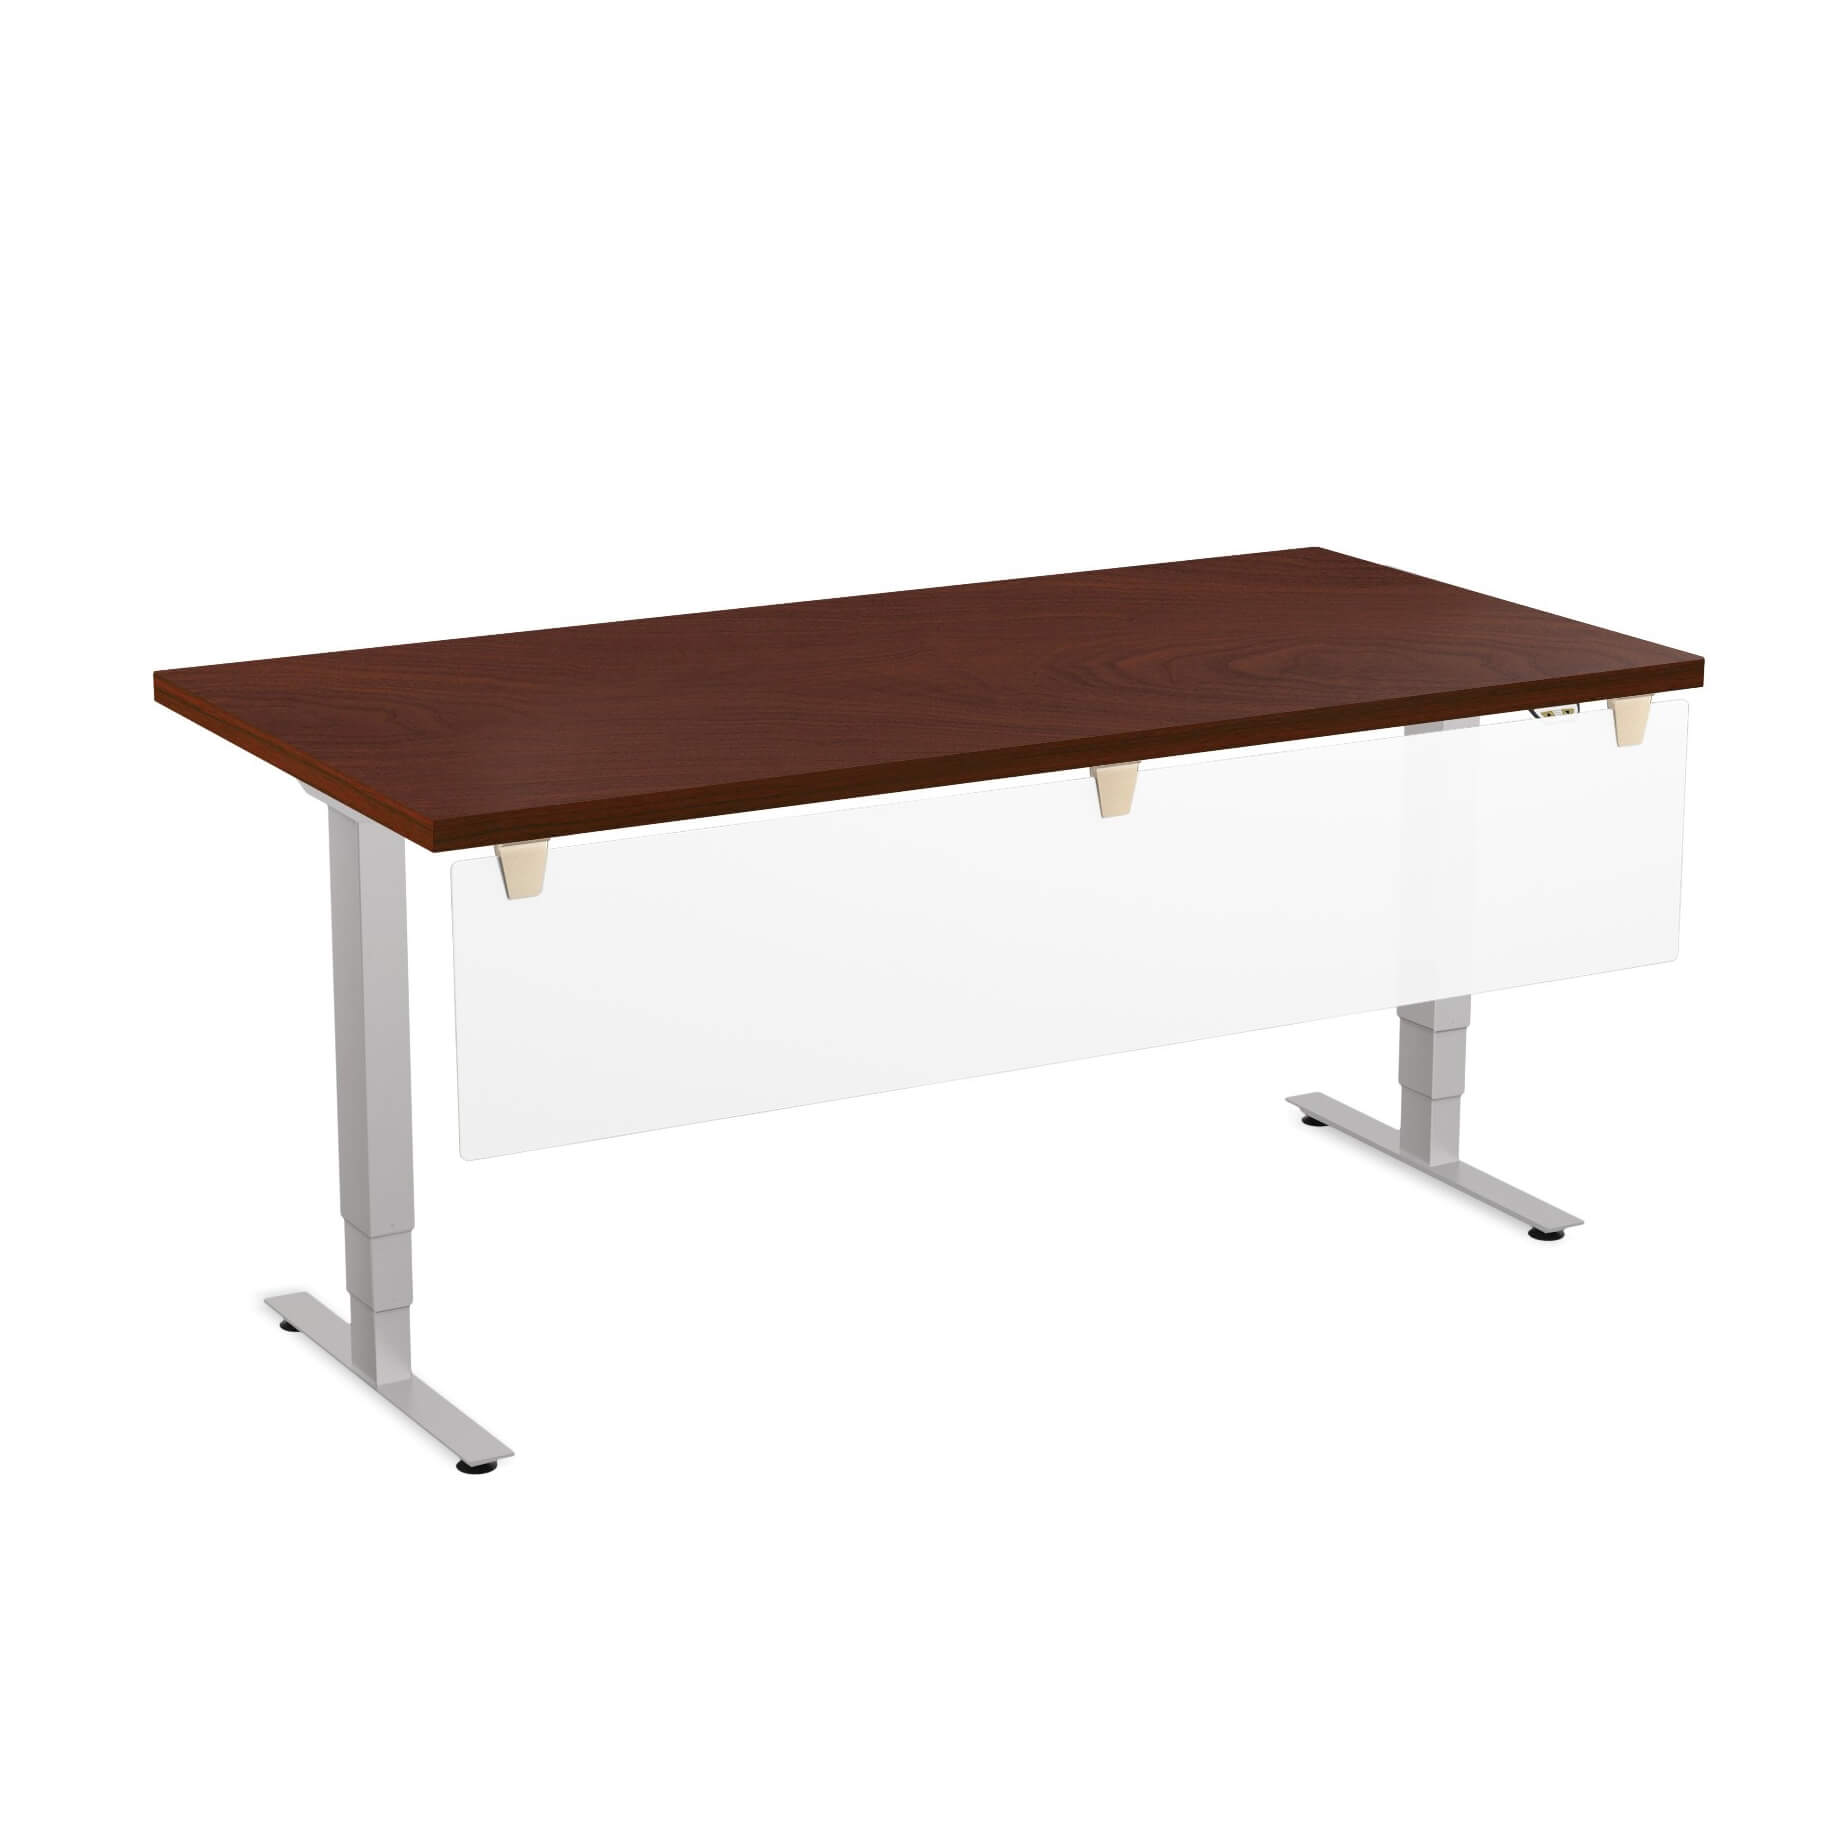 sit-stand-desk-height-adjustable-table-electric-1.jpg